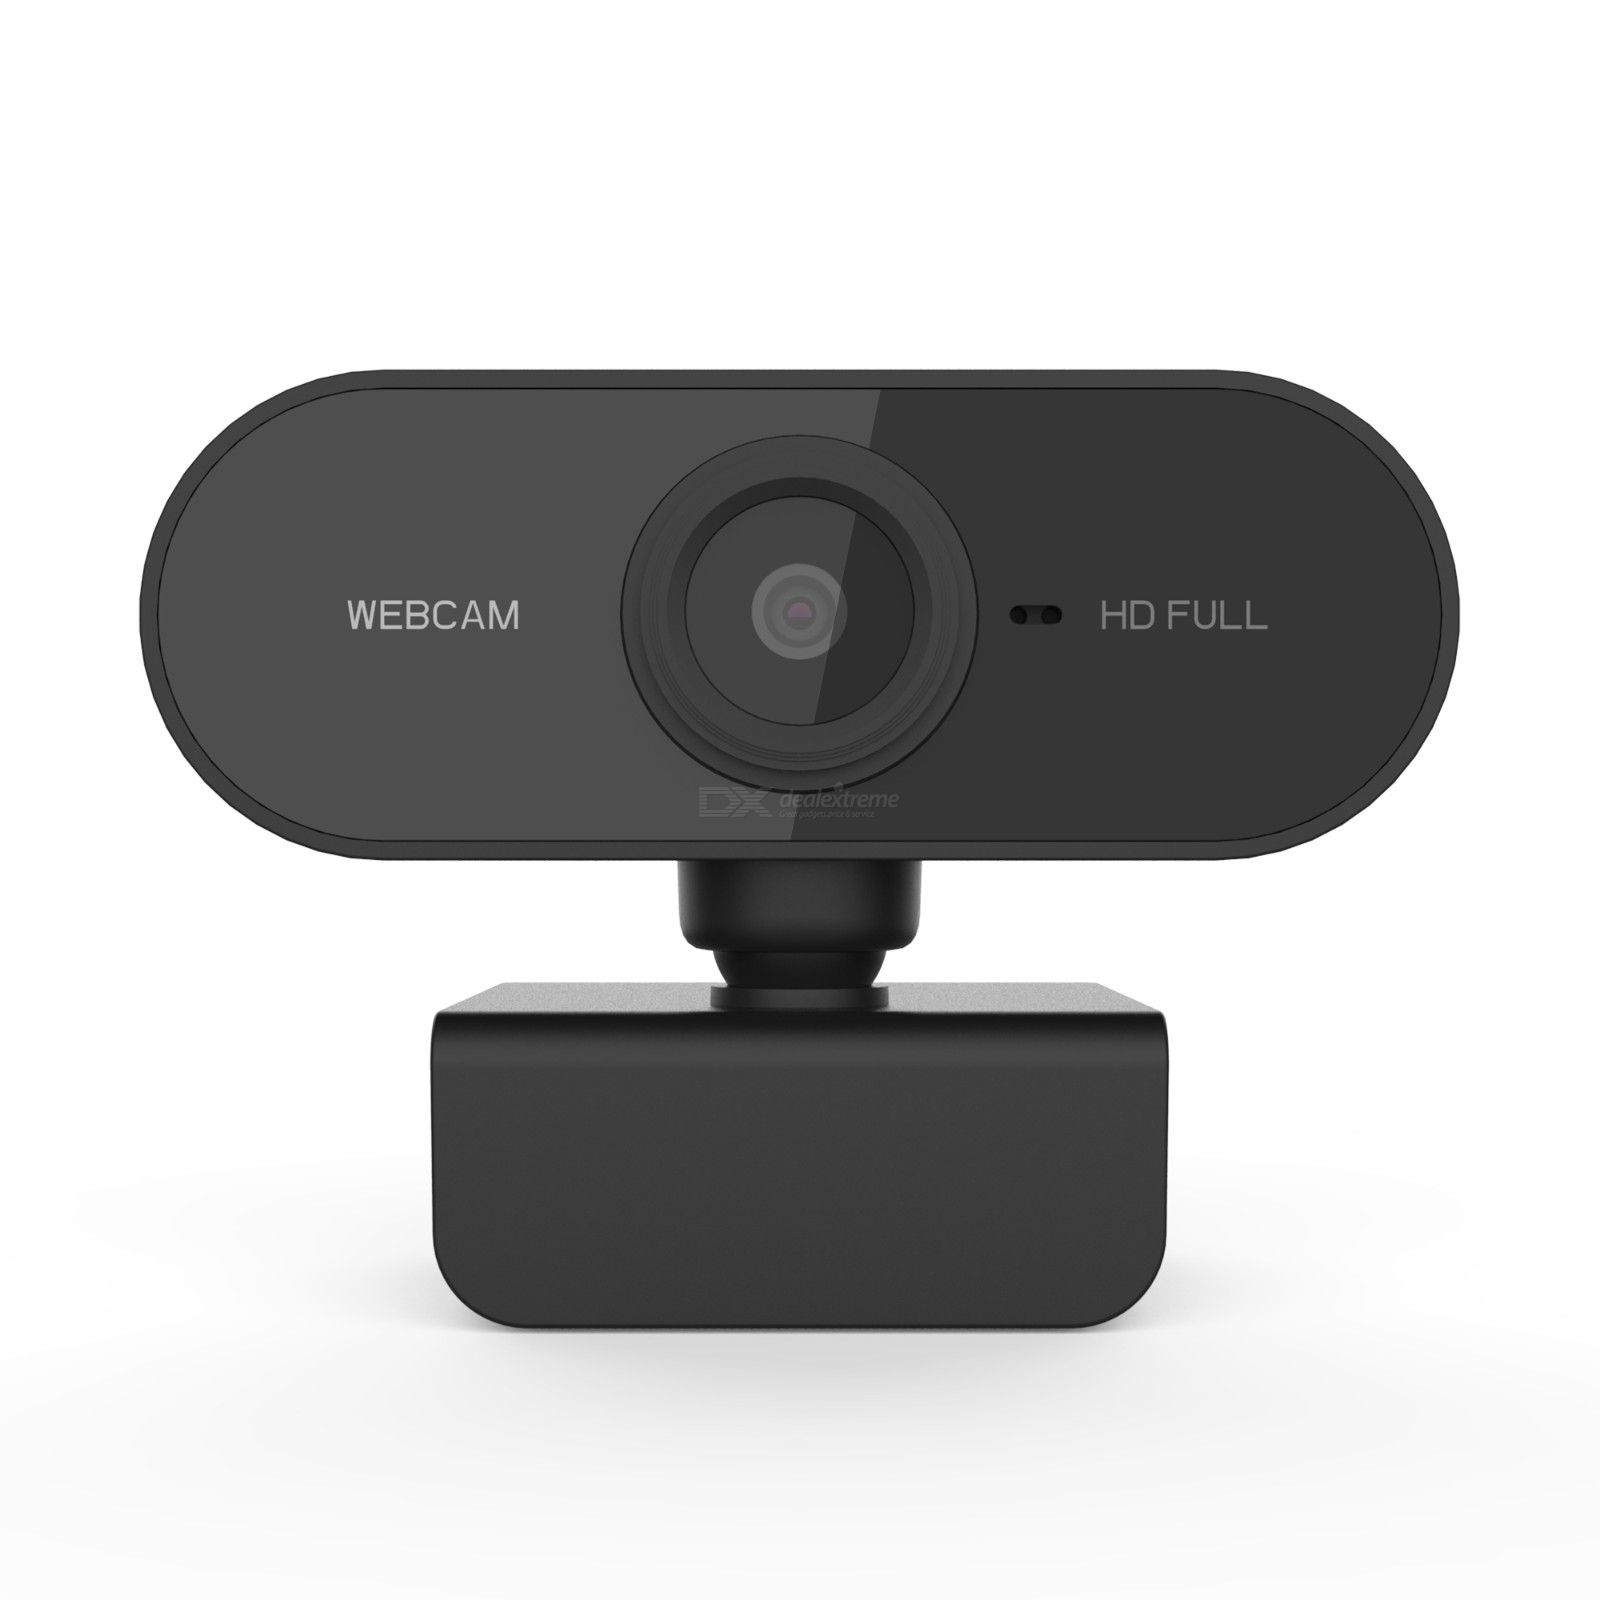 Web Camera HD 1080P USB Video Cam with Mic 360° Rotatable Drive-free Webcam for Video Calling Meeting Online Teaching